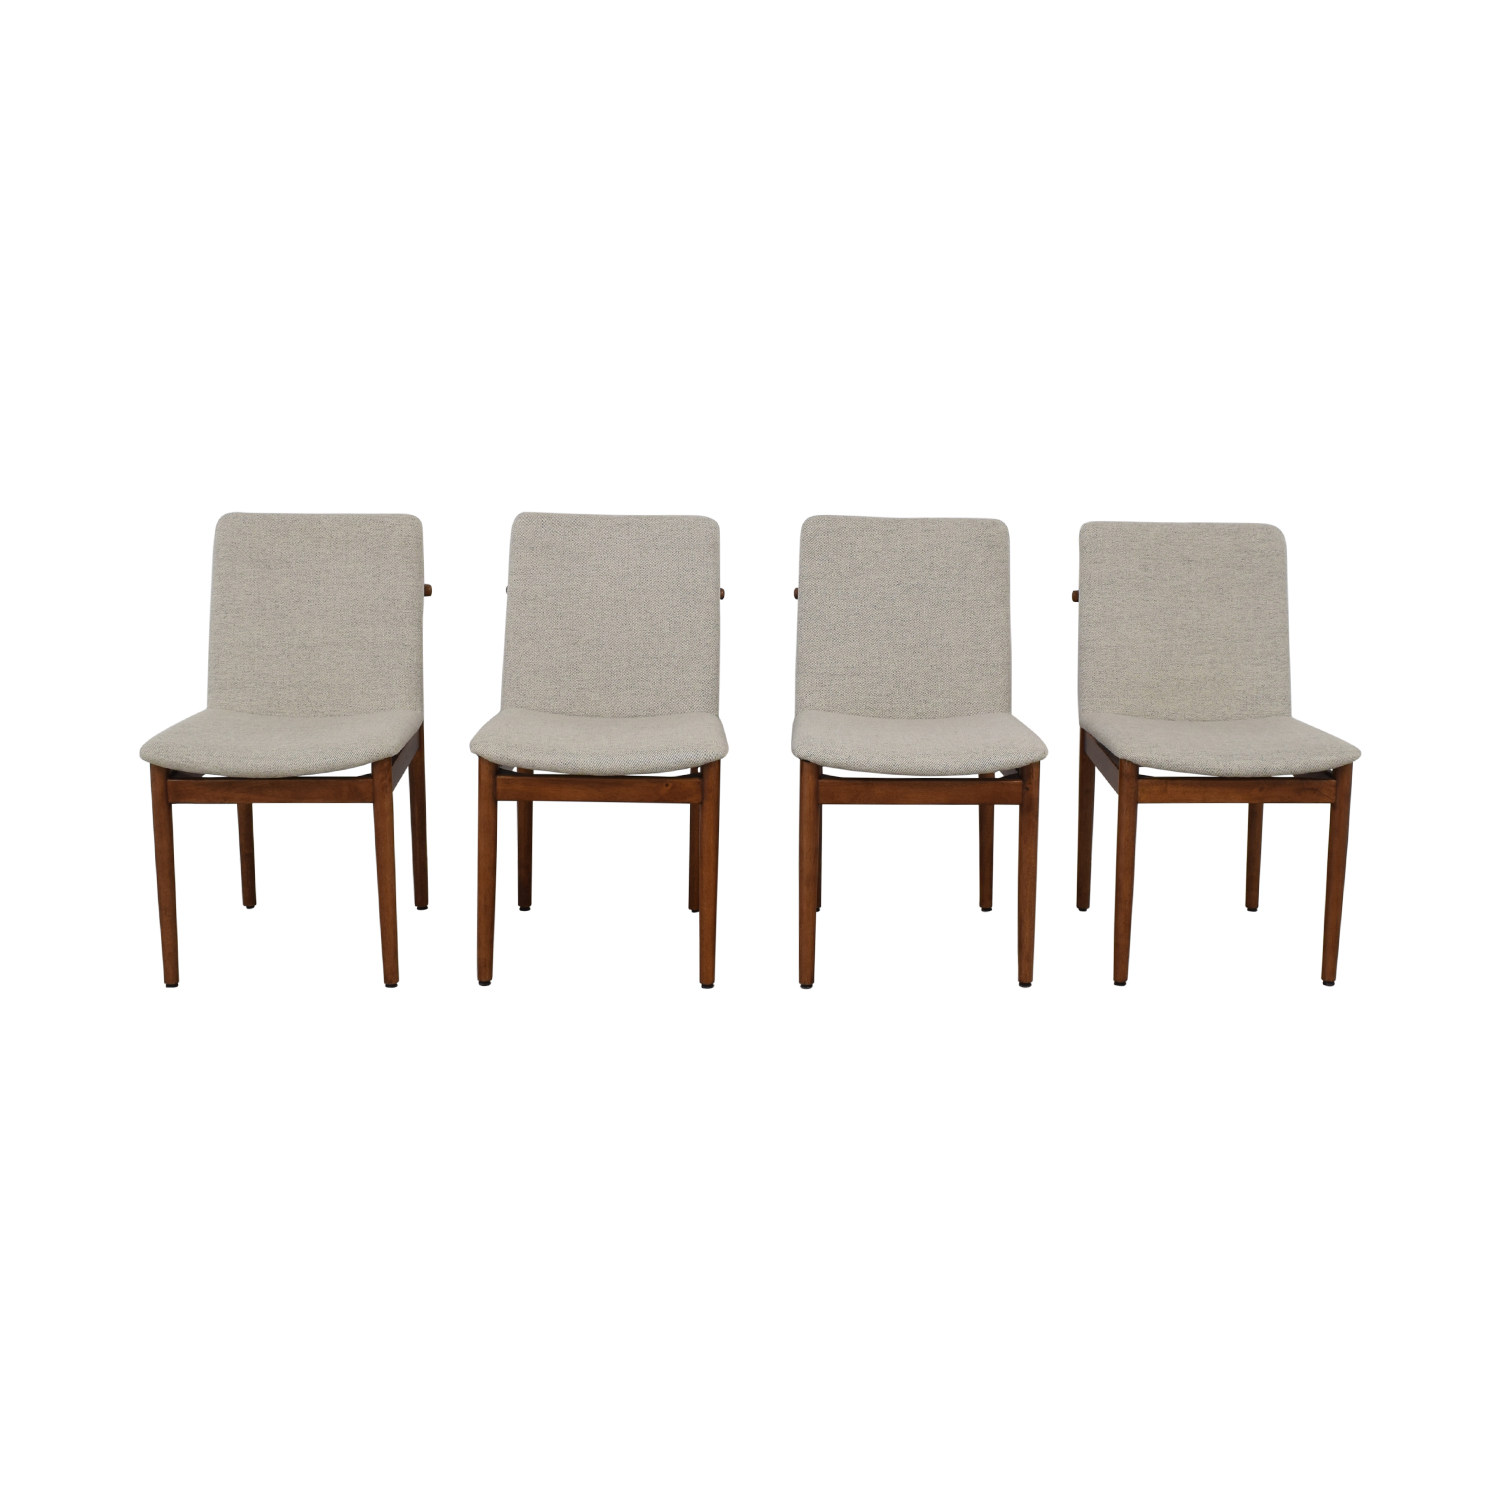 55% OFF   West Elm West Elm Grey Framework Upholstered Dining Chairs /  Chairs